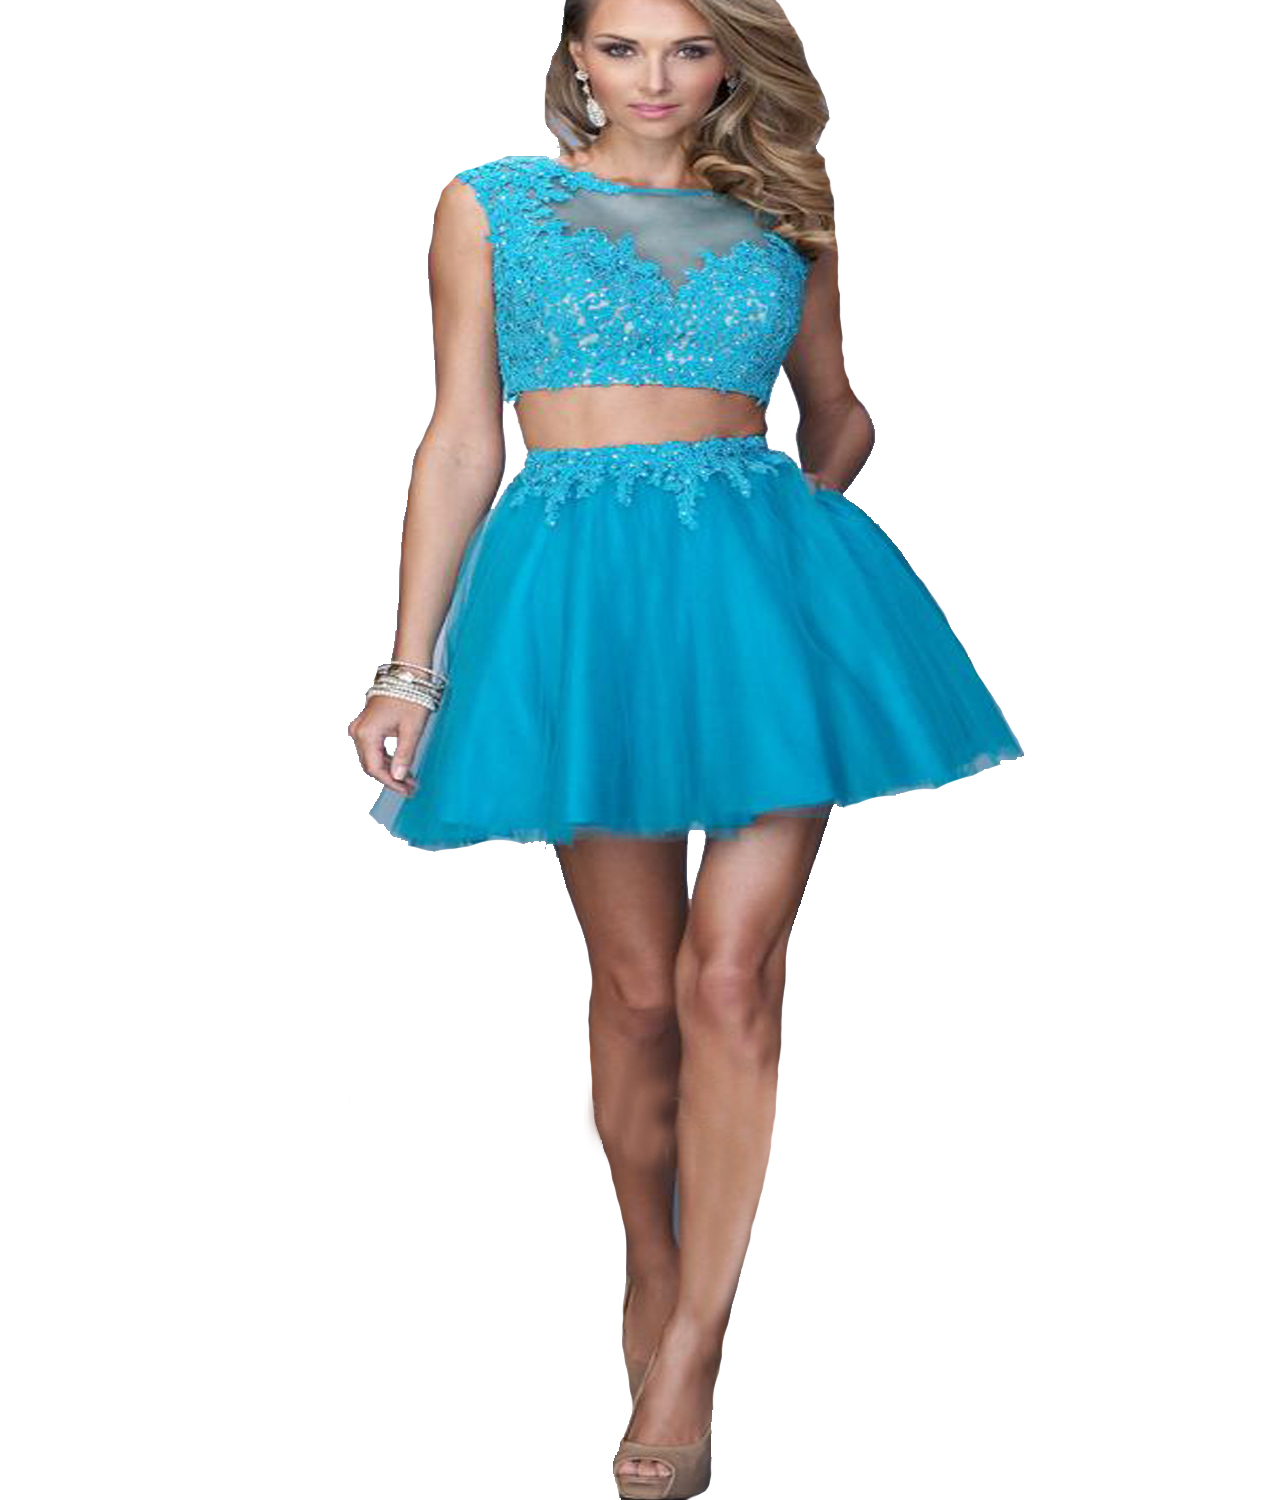 J132 2 Pieces Short Blue Cocktail Dresses, Homecoming Dresses 2016 ...